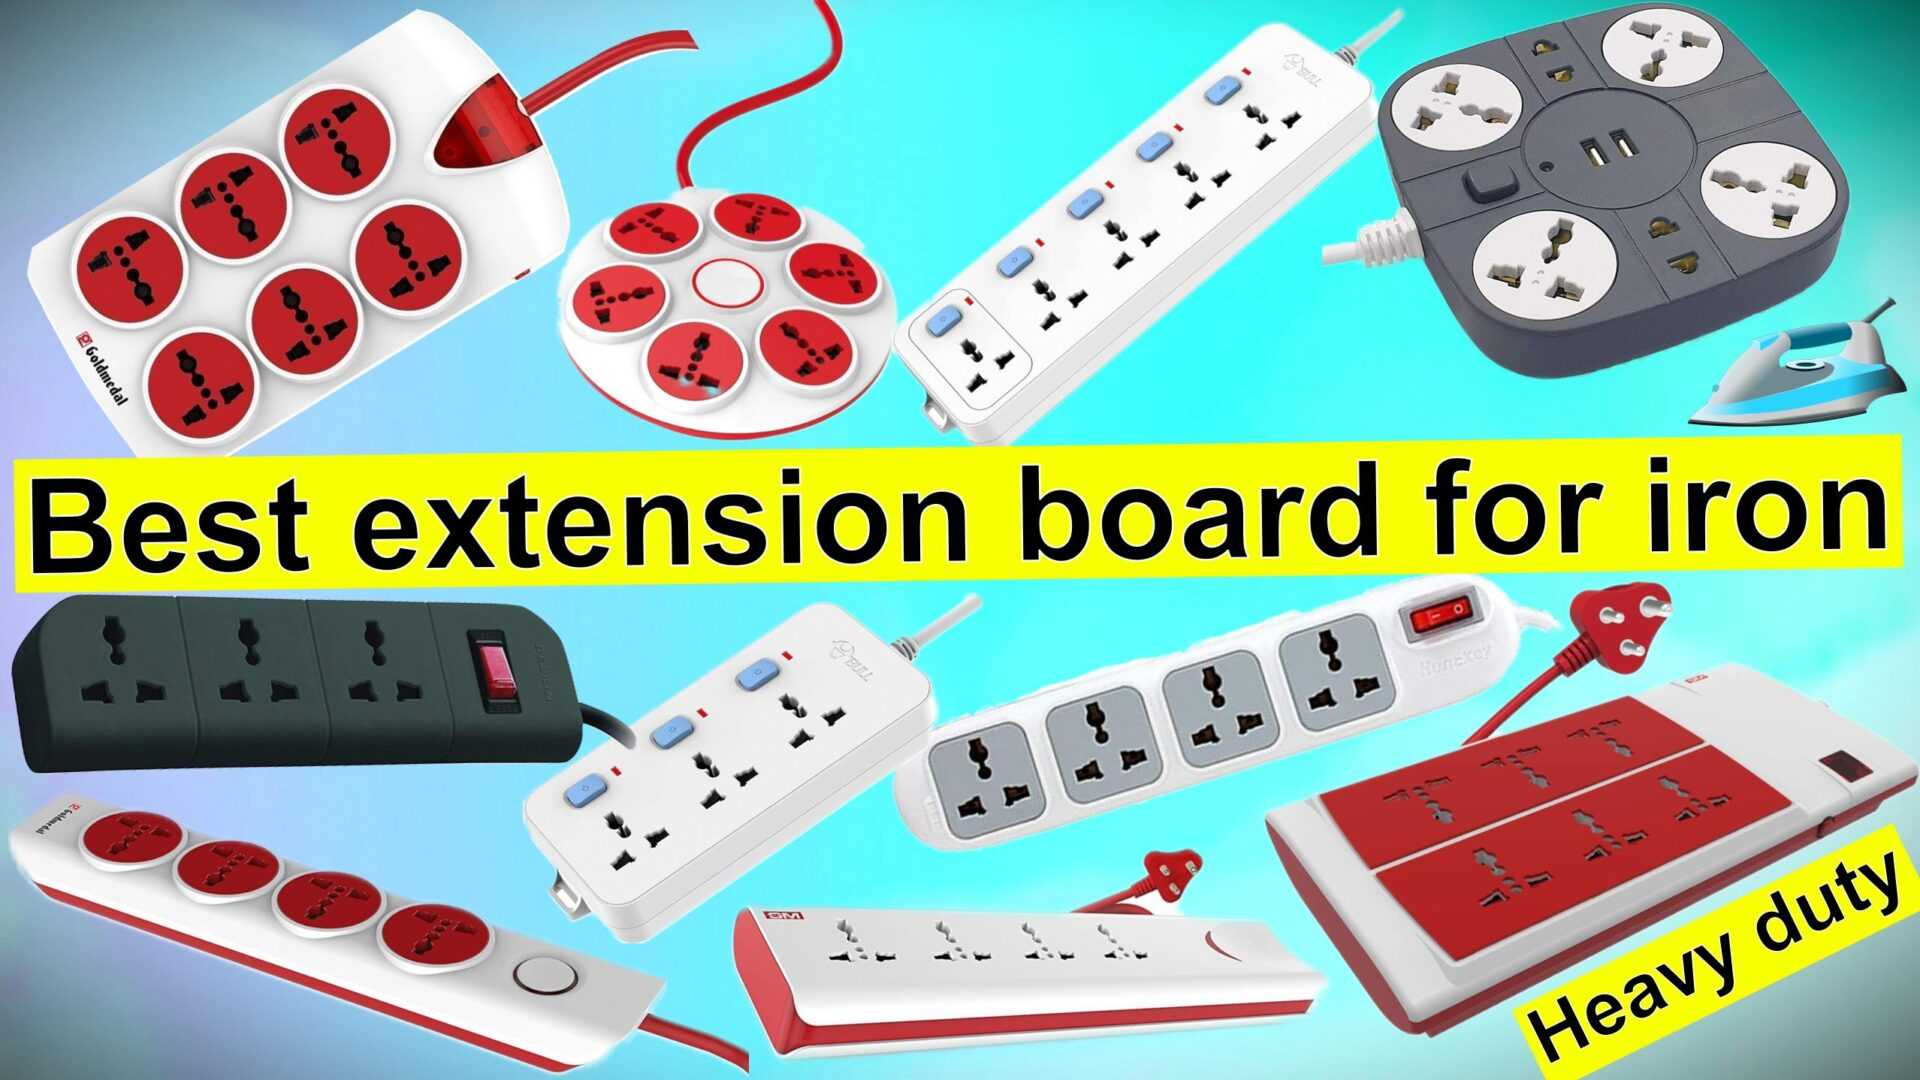 Best extension board for iron in India